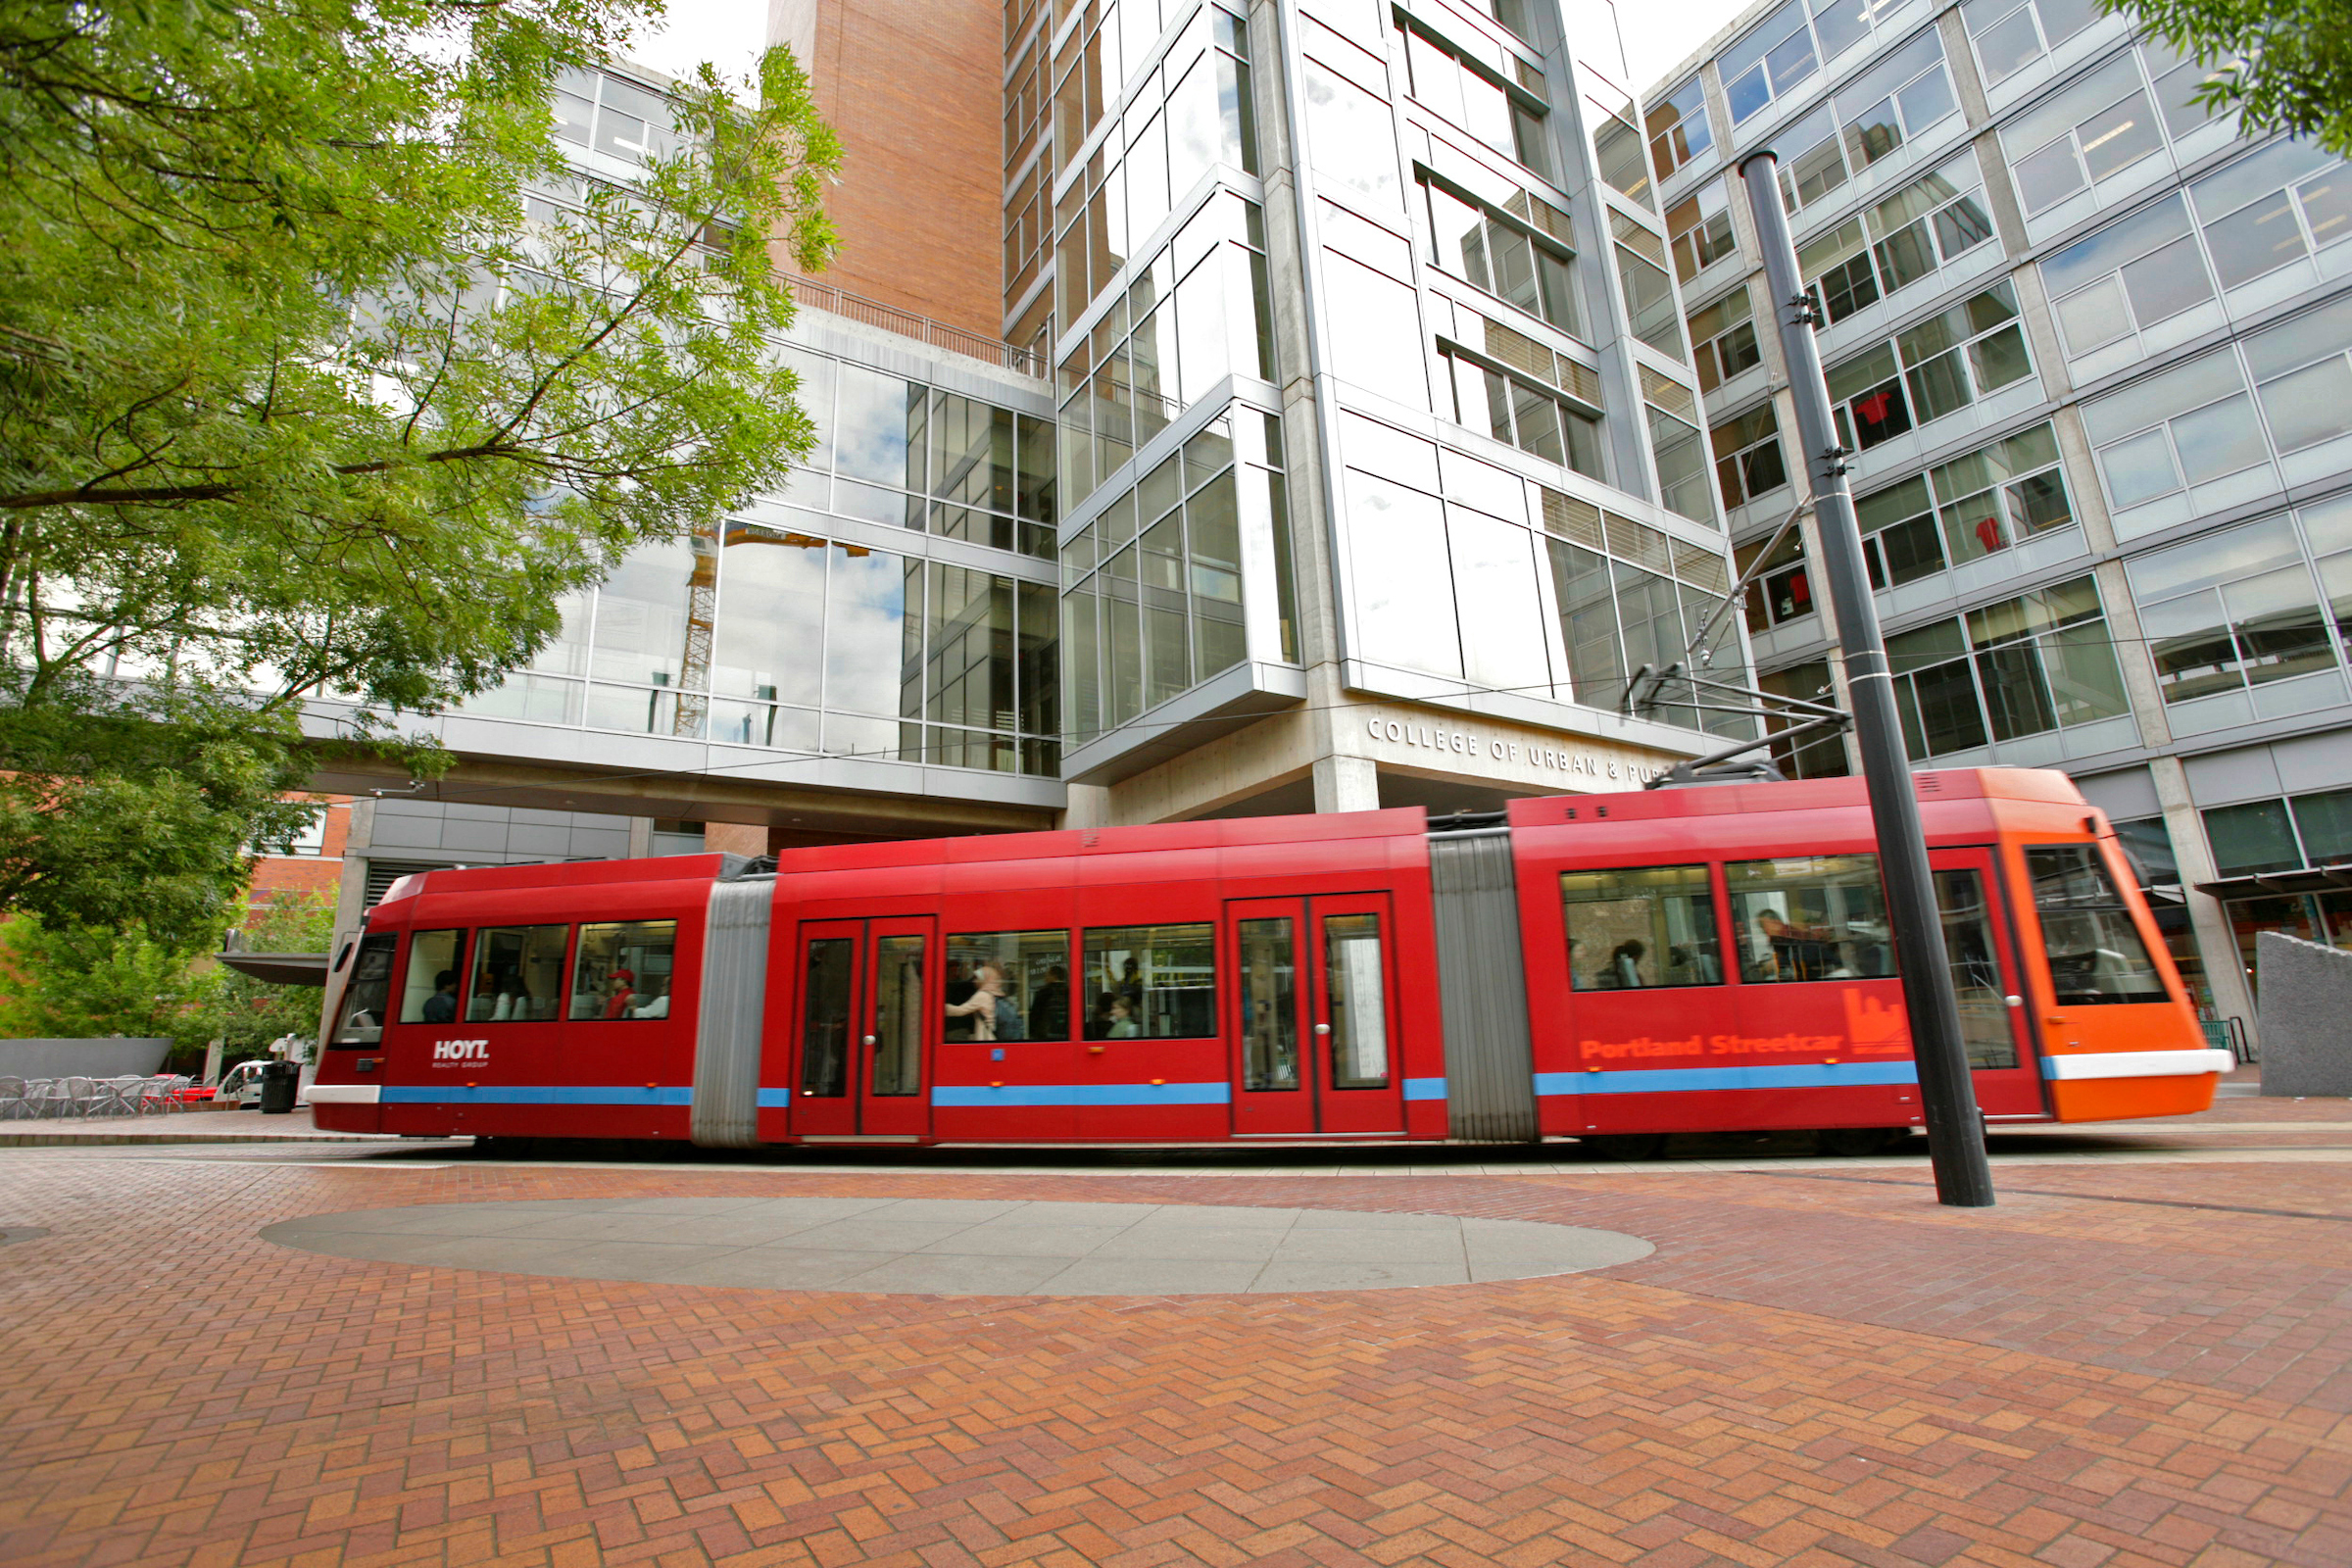 Portland Streetcar going through Urban Plaza